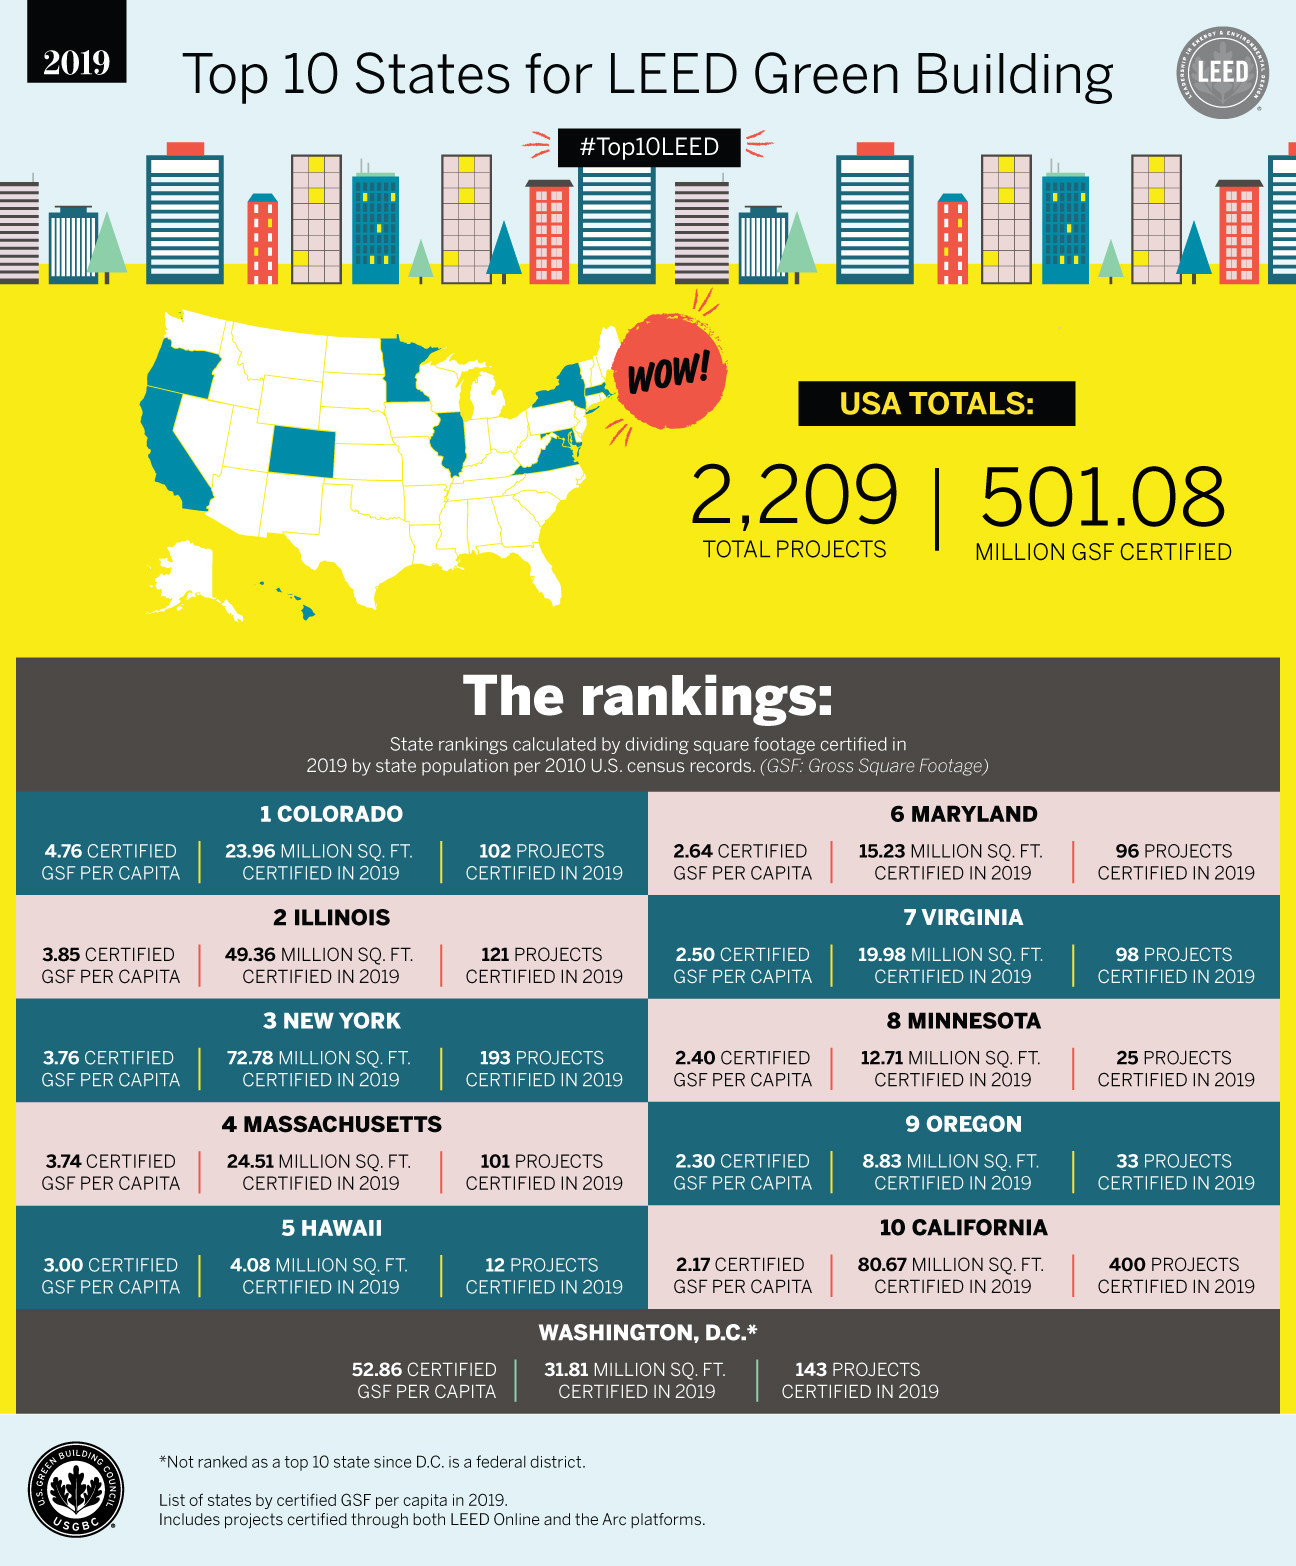 U S Green Building Council Releases The Top 10 States For Leed Recognizing Leaders Committed To More Sustainable And Resilient Buildings Cities And Communities